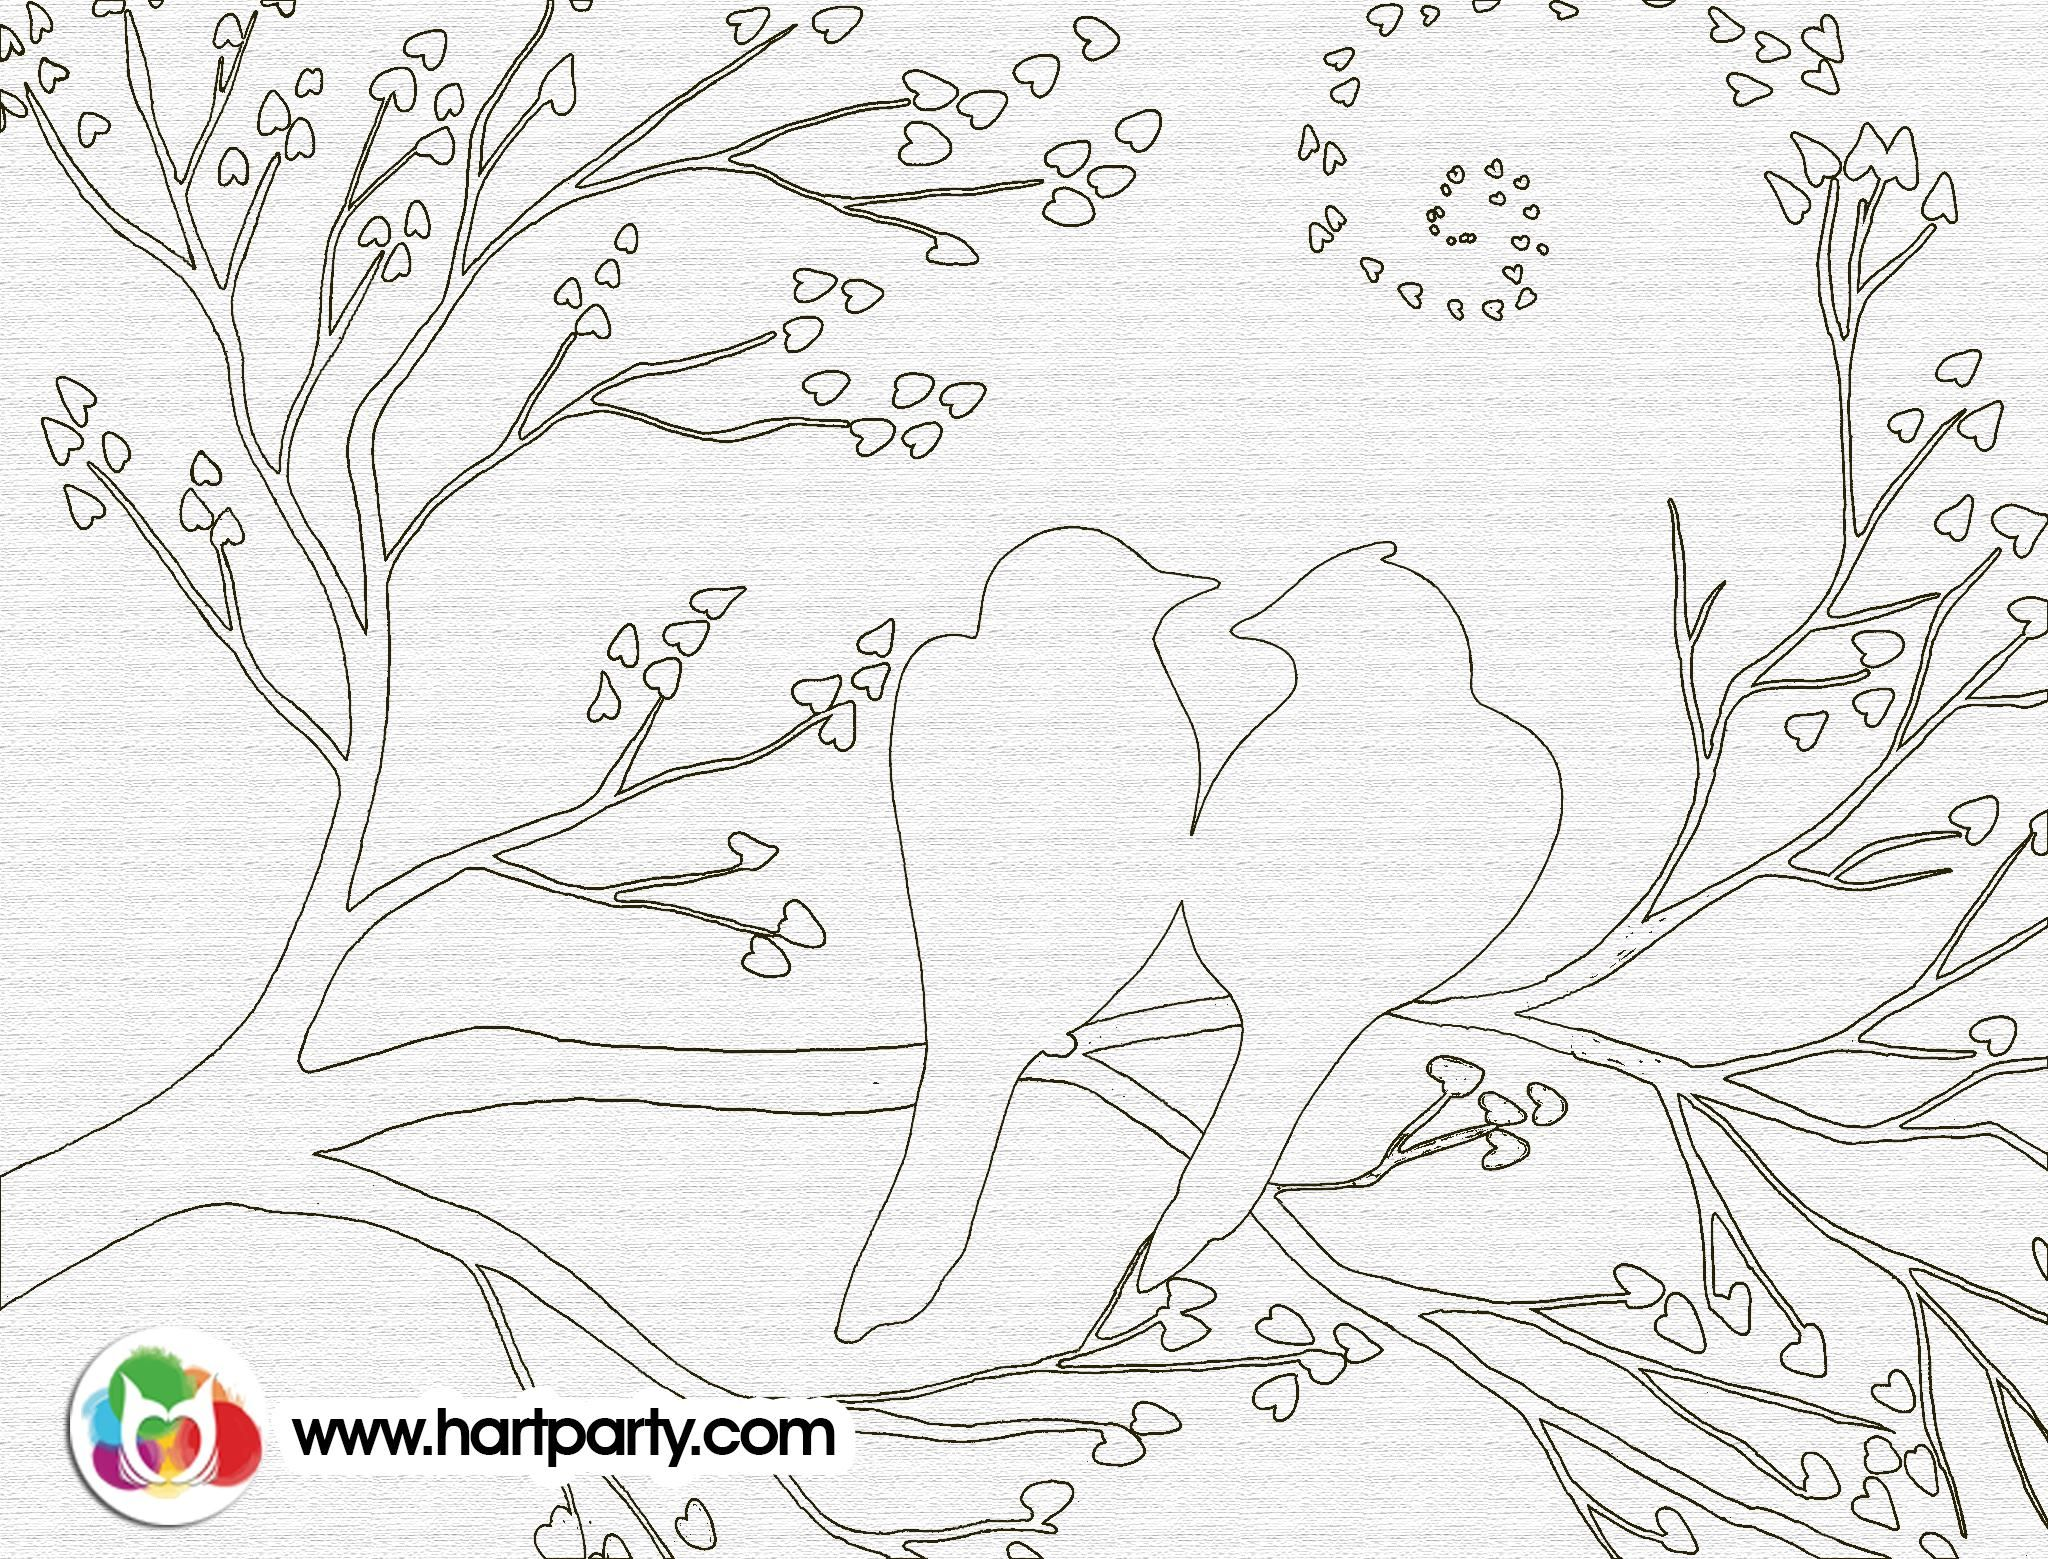 How to birds on a branch Trace-able and coloring page